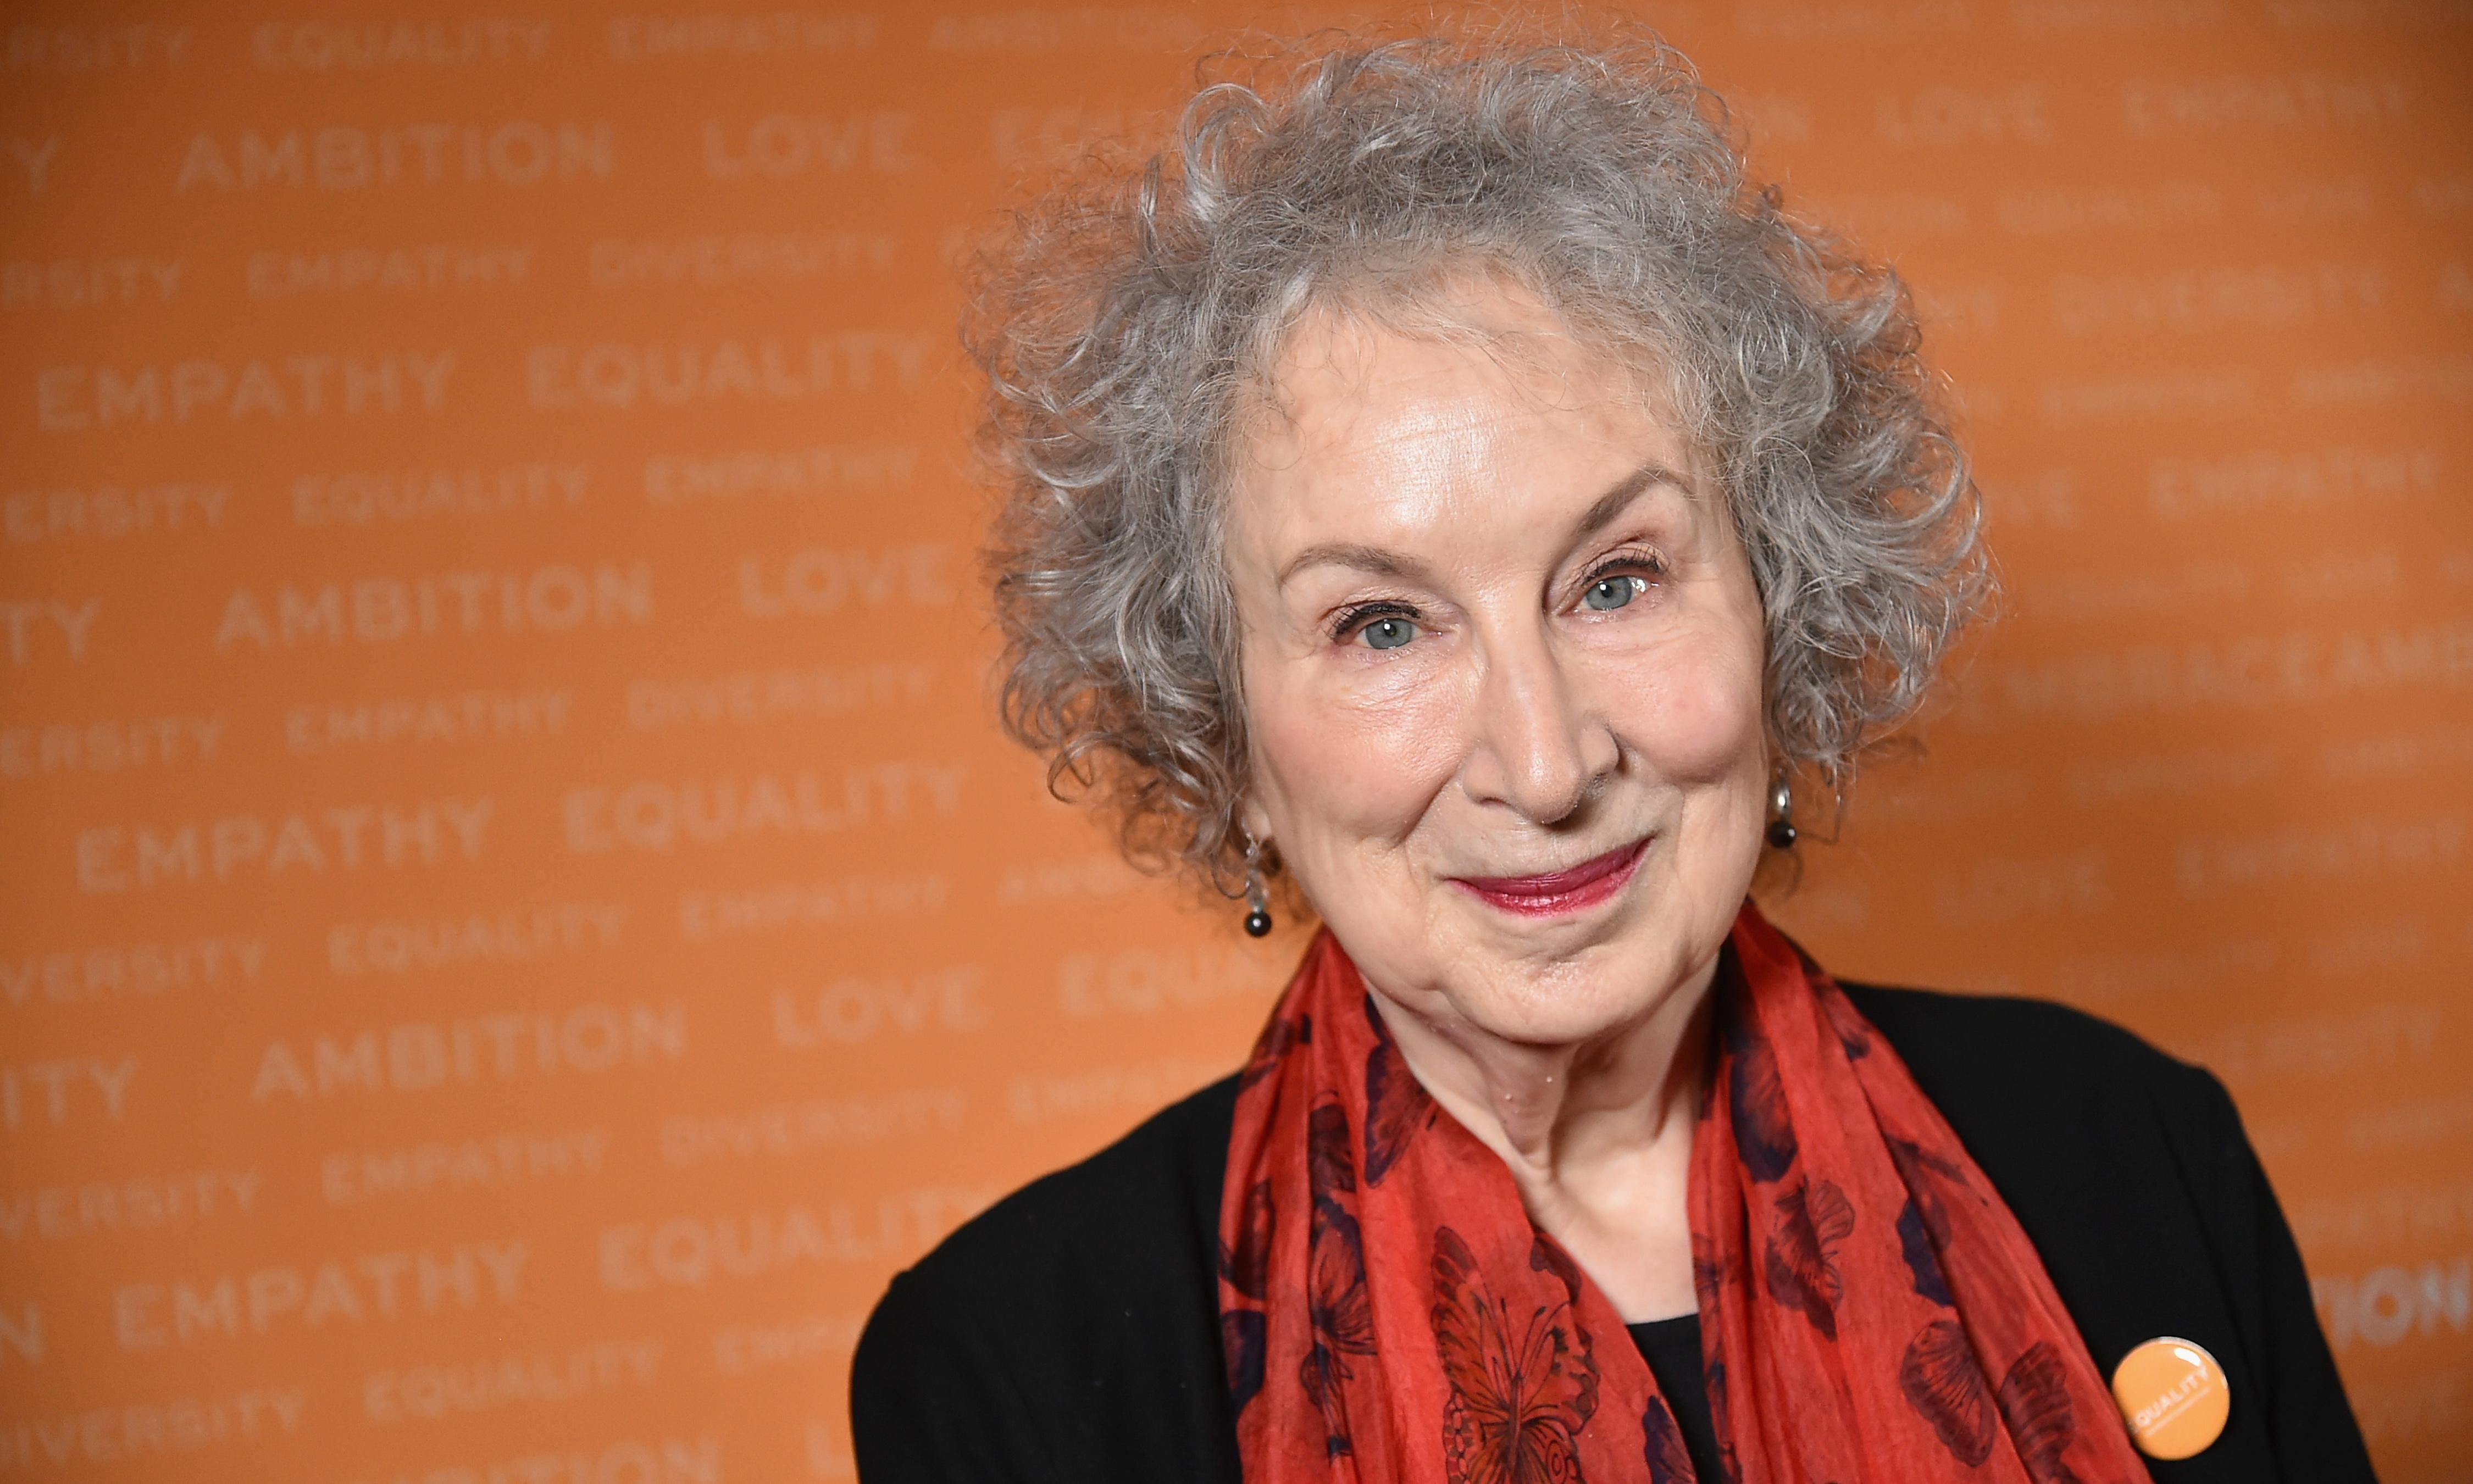 Atwood to launch The Handmaid's Tale sequel with live broadcast